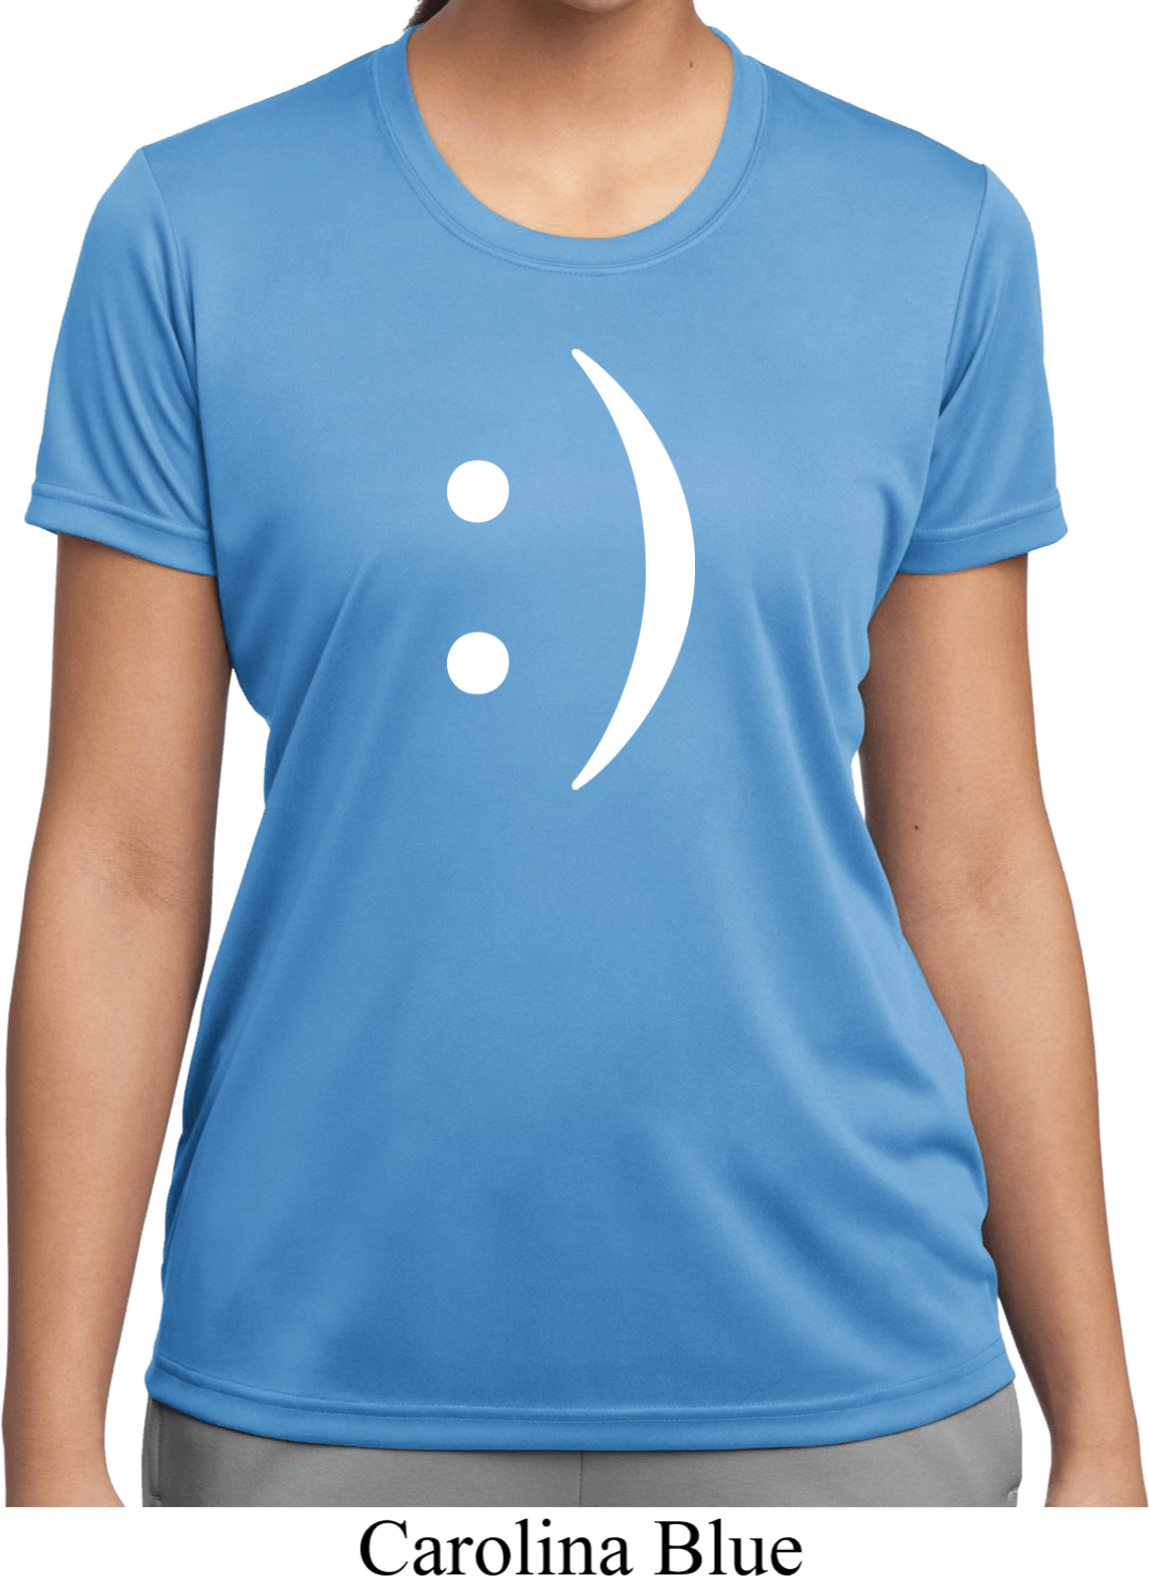 ladies funny shirt smiley chat face moisture wicking tee t shirt smiley chat face ladies funny. Black Bedroom Furniture Sets. Home Design Ideas